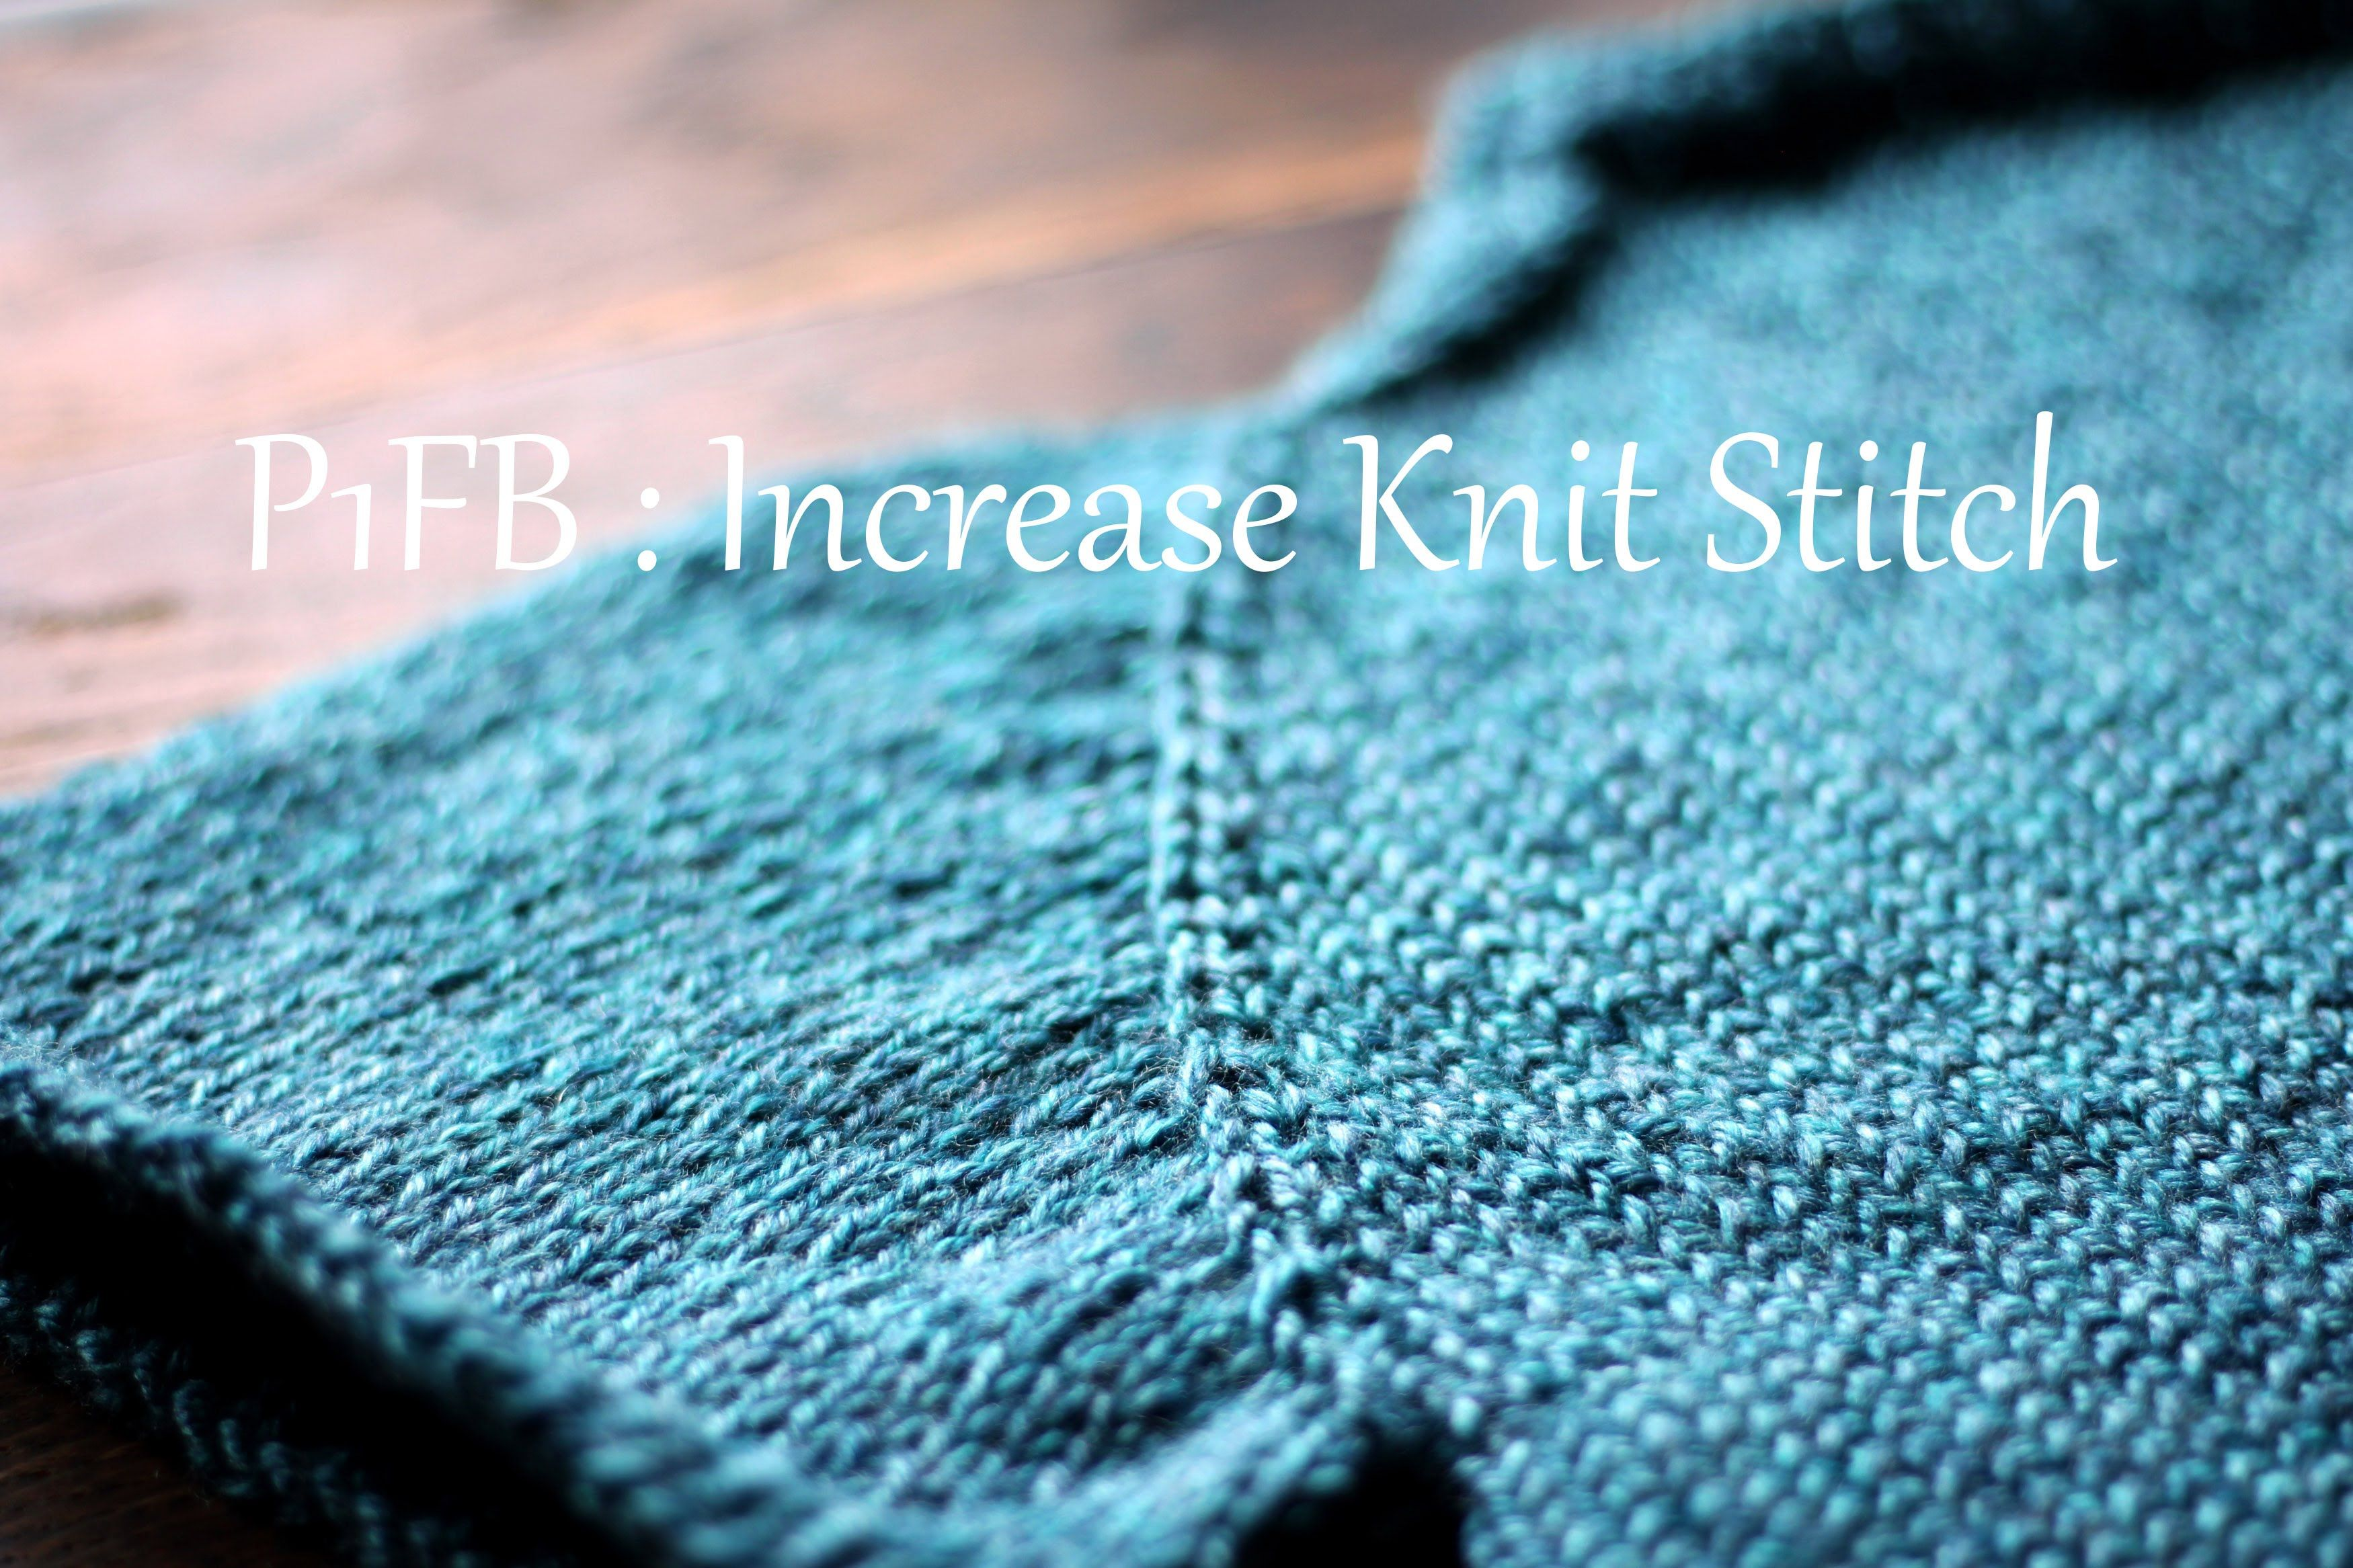 P1fb Increase Knit Stitch Knitting Tips Tricks Techniques